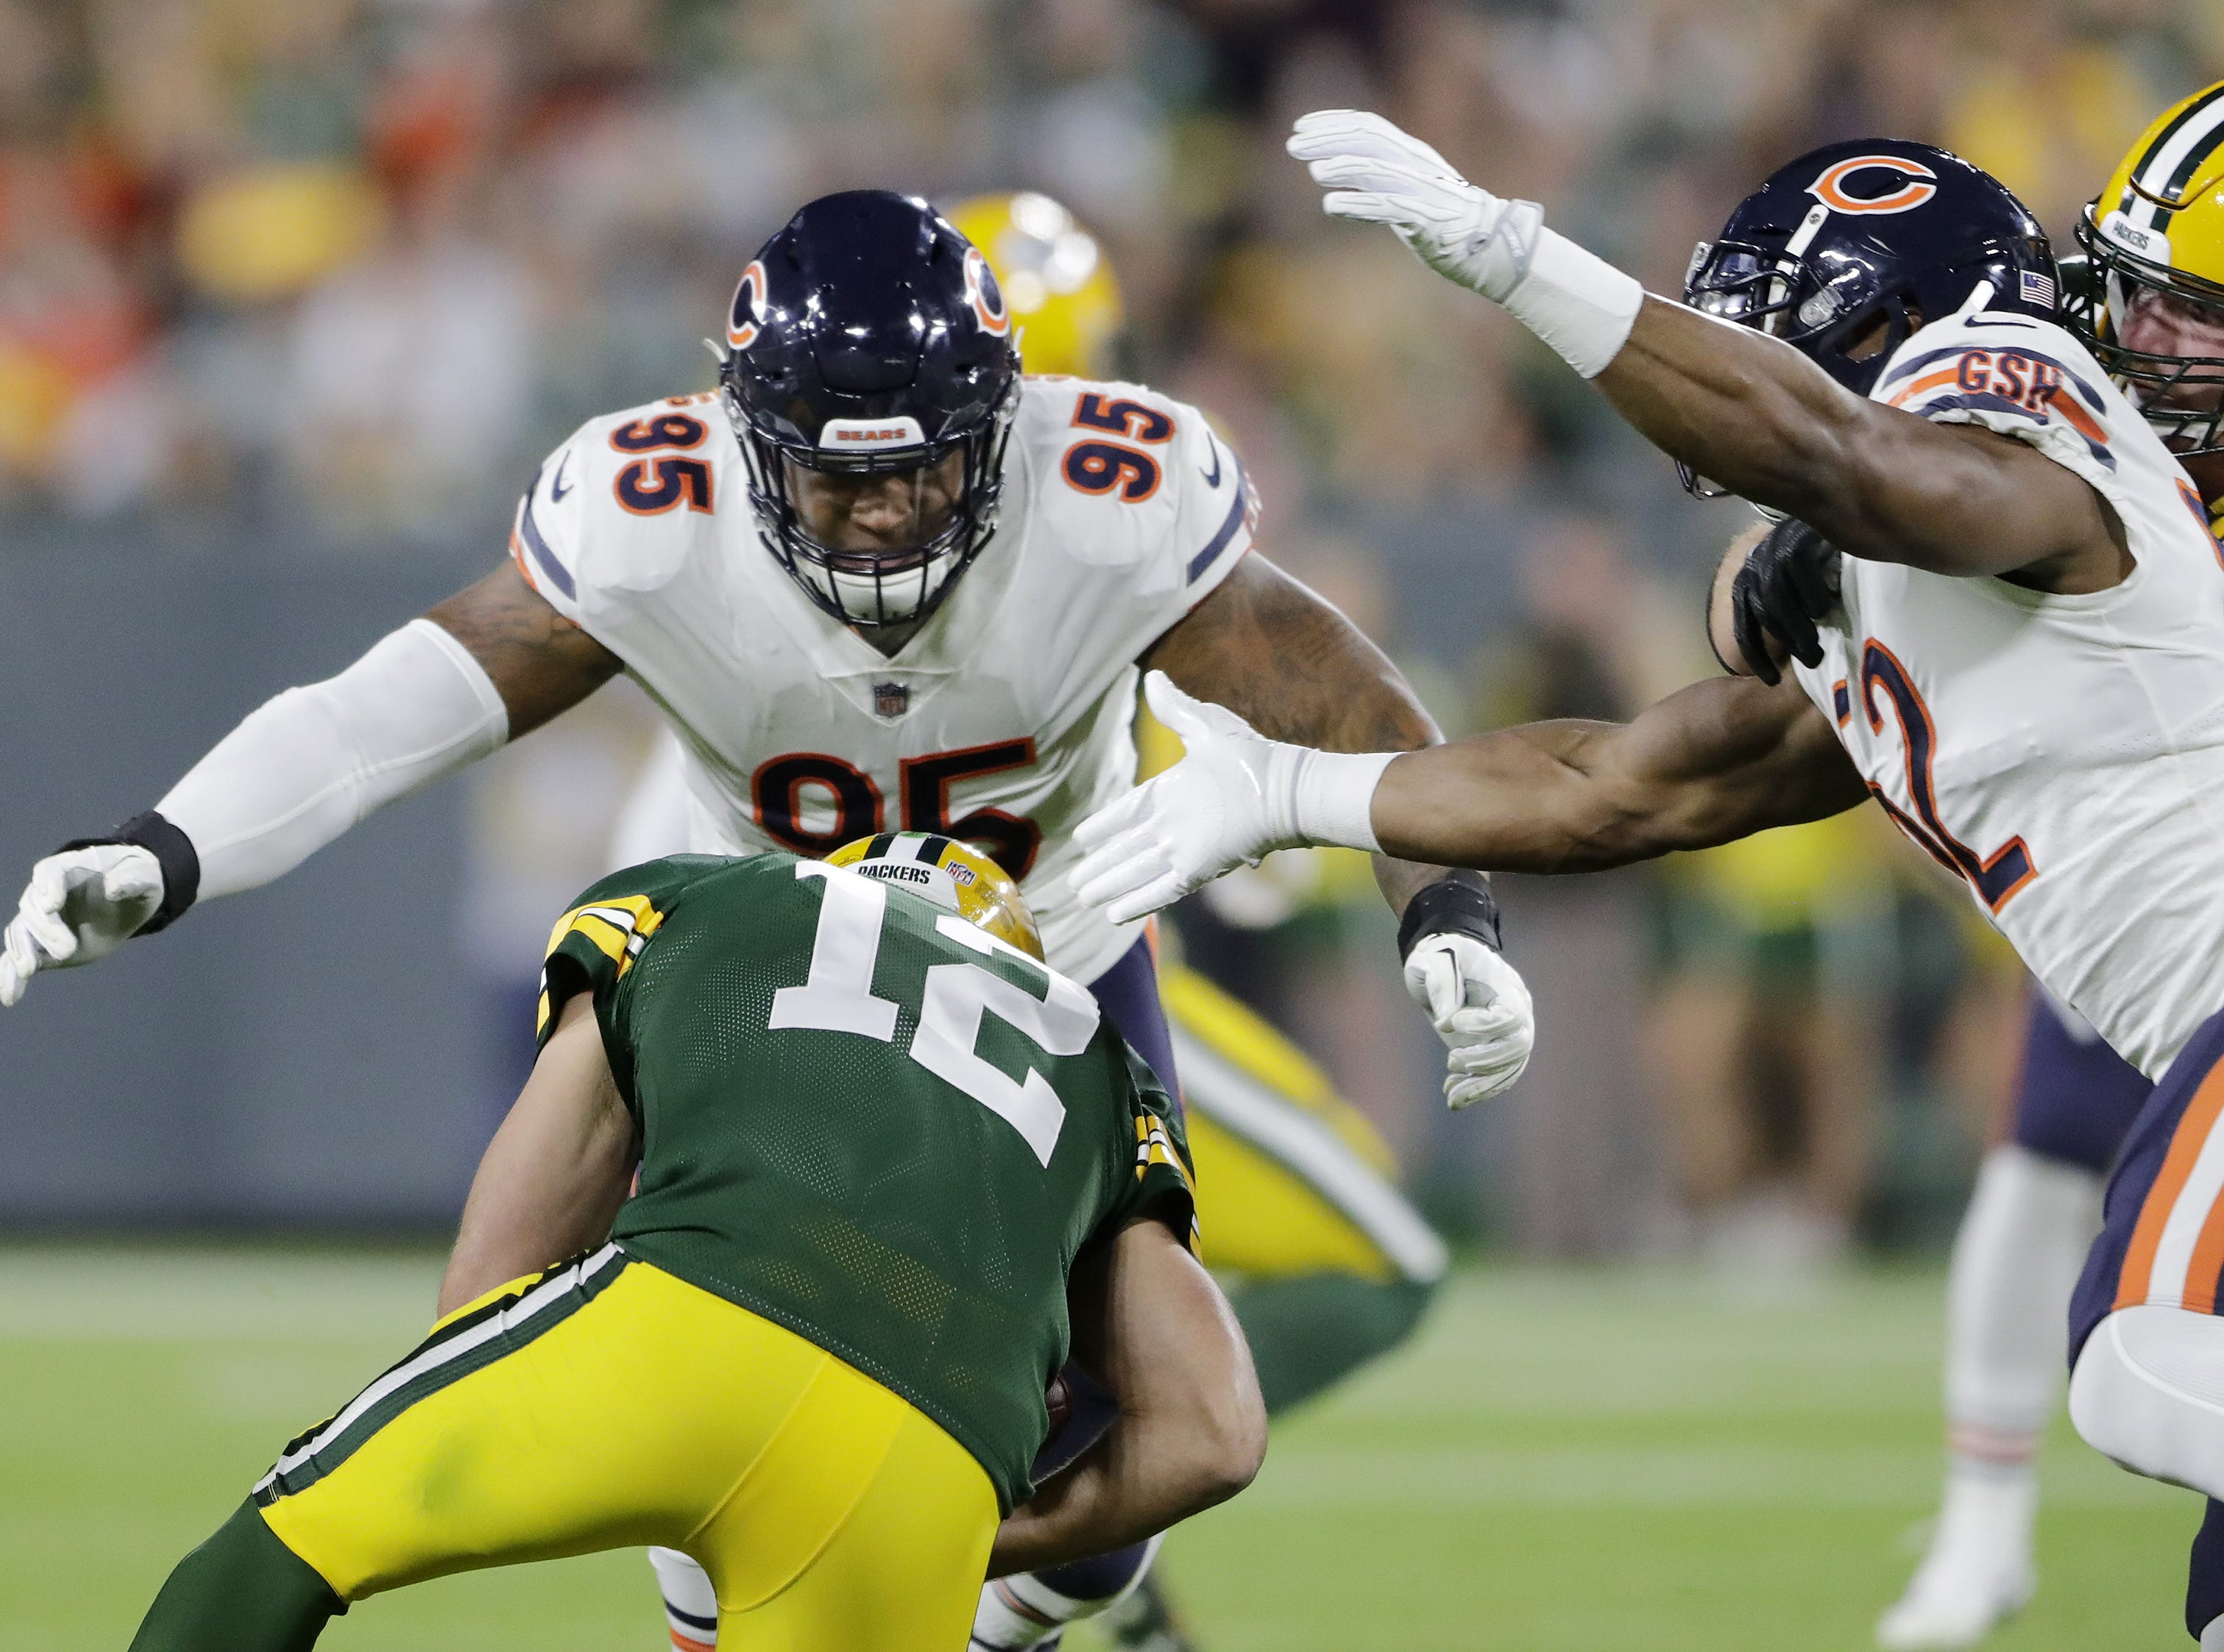 Green Bay Packers quarterback Aaron Rodgers (12) is sacked by Chicago Bears defensive end Roy Robertson-Harris (95) and linebacker Khalil Mack (52) in the second quarter at Lambeau Field on Sunday, September 9, 2018 in Green Bay, Wis.